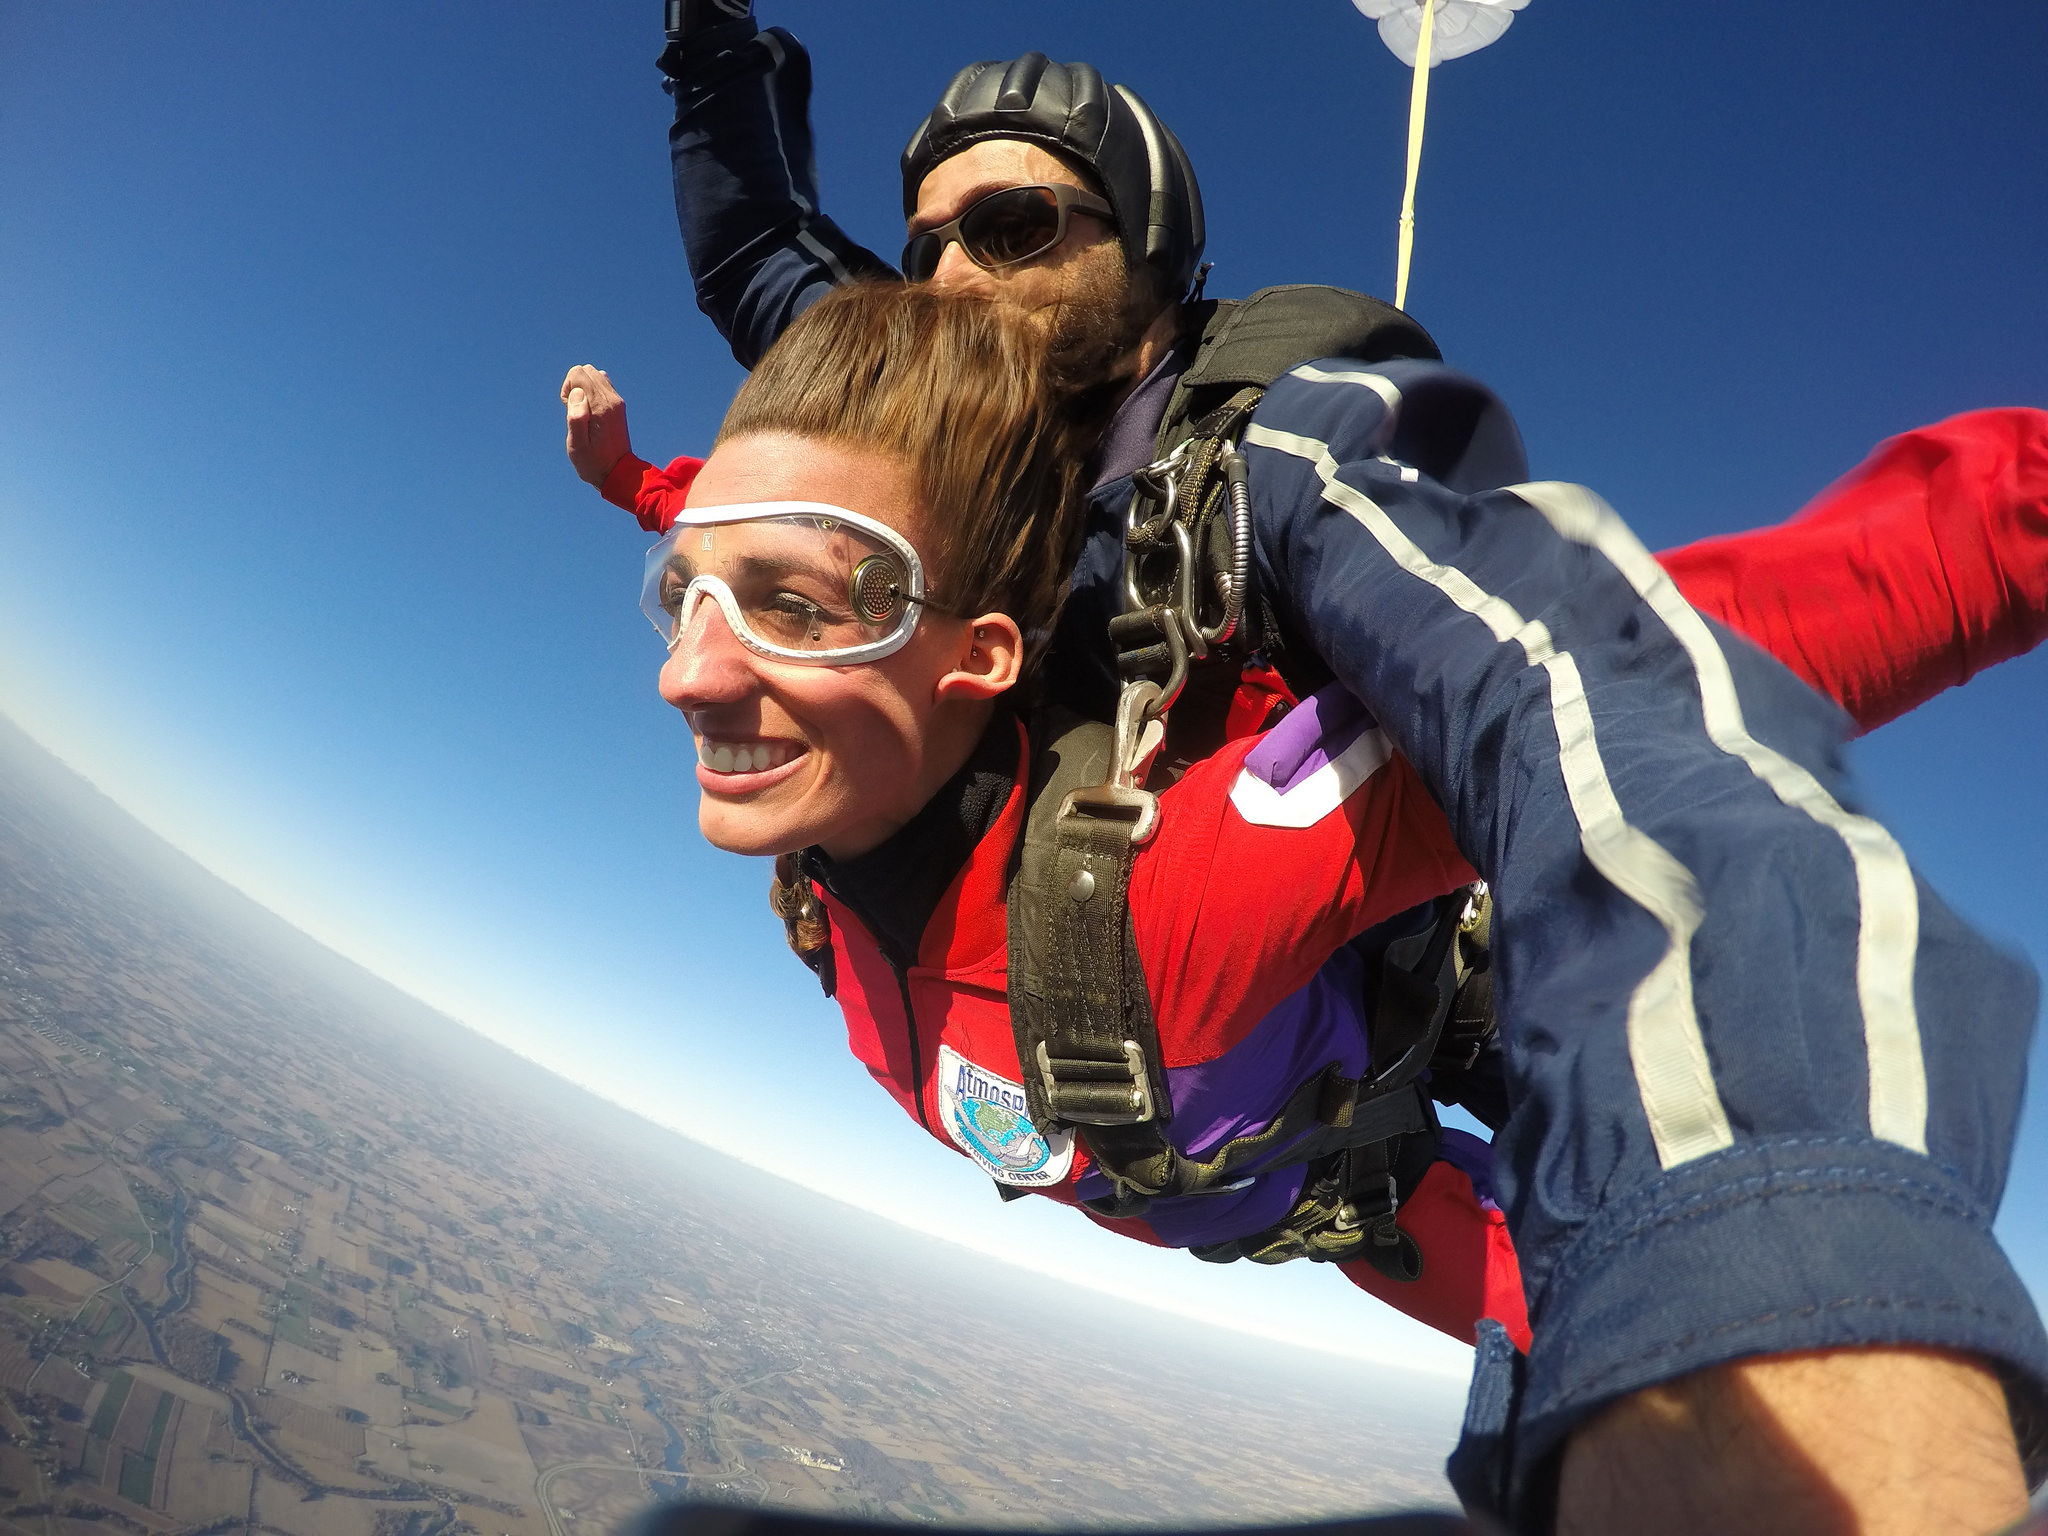 A lady smiles while in free fall during a tandem skydive at Wisconsin Skydiving Center near Milwaukee, WI